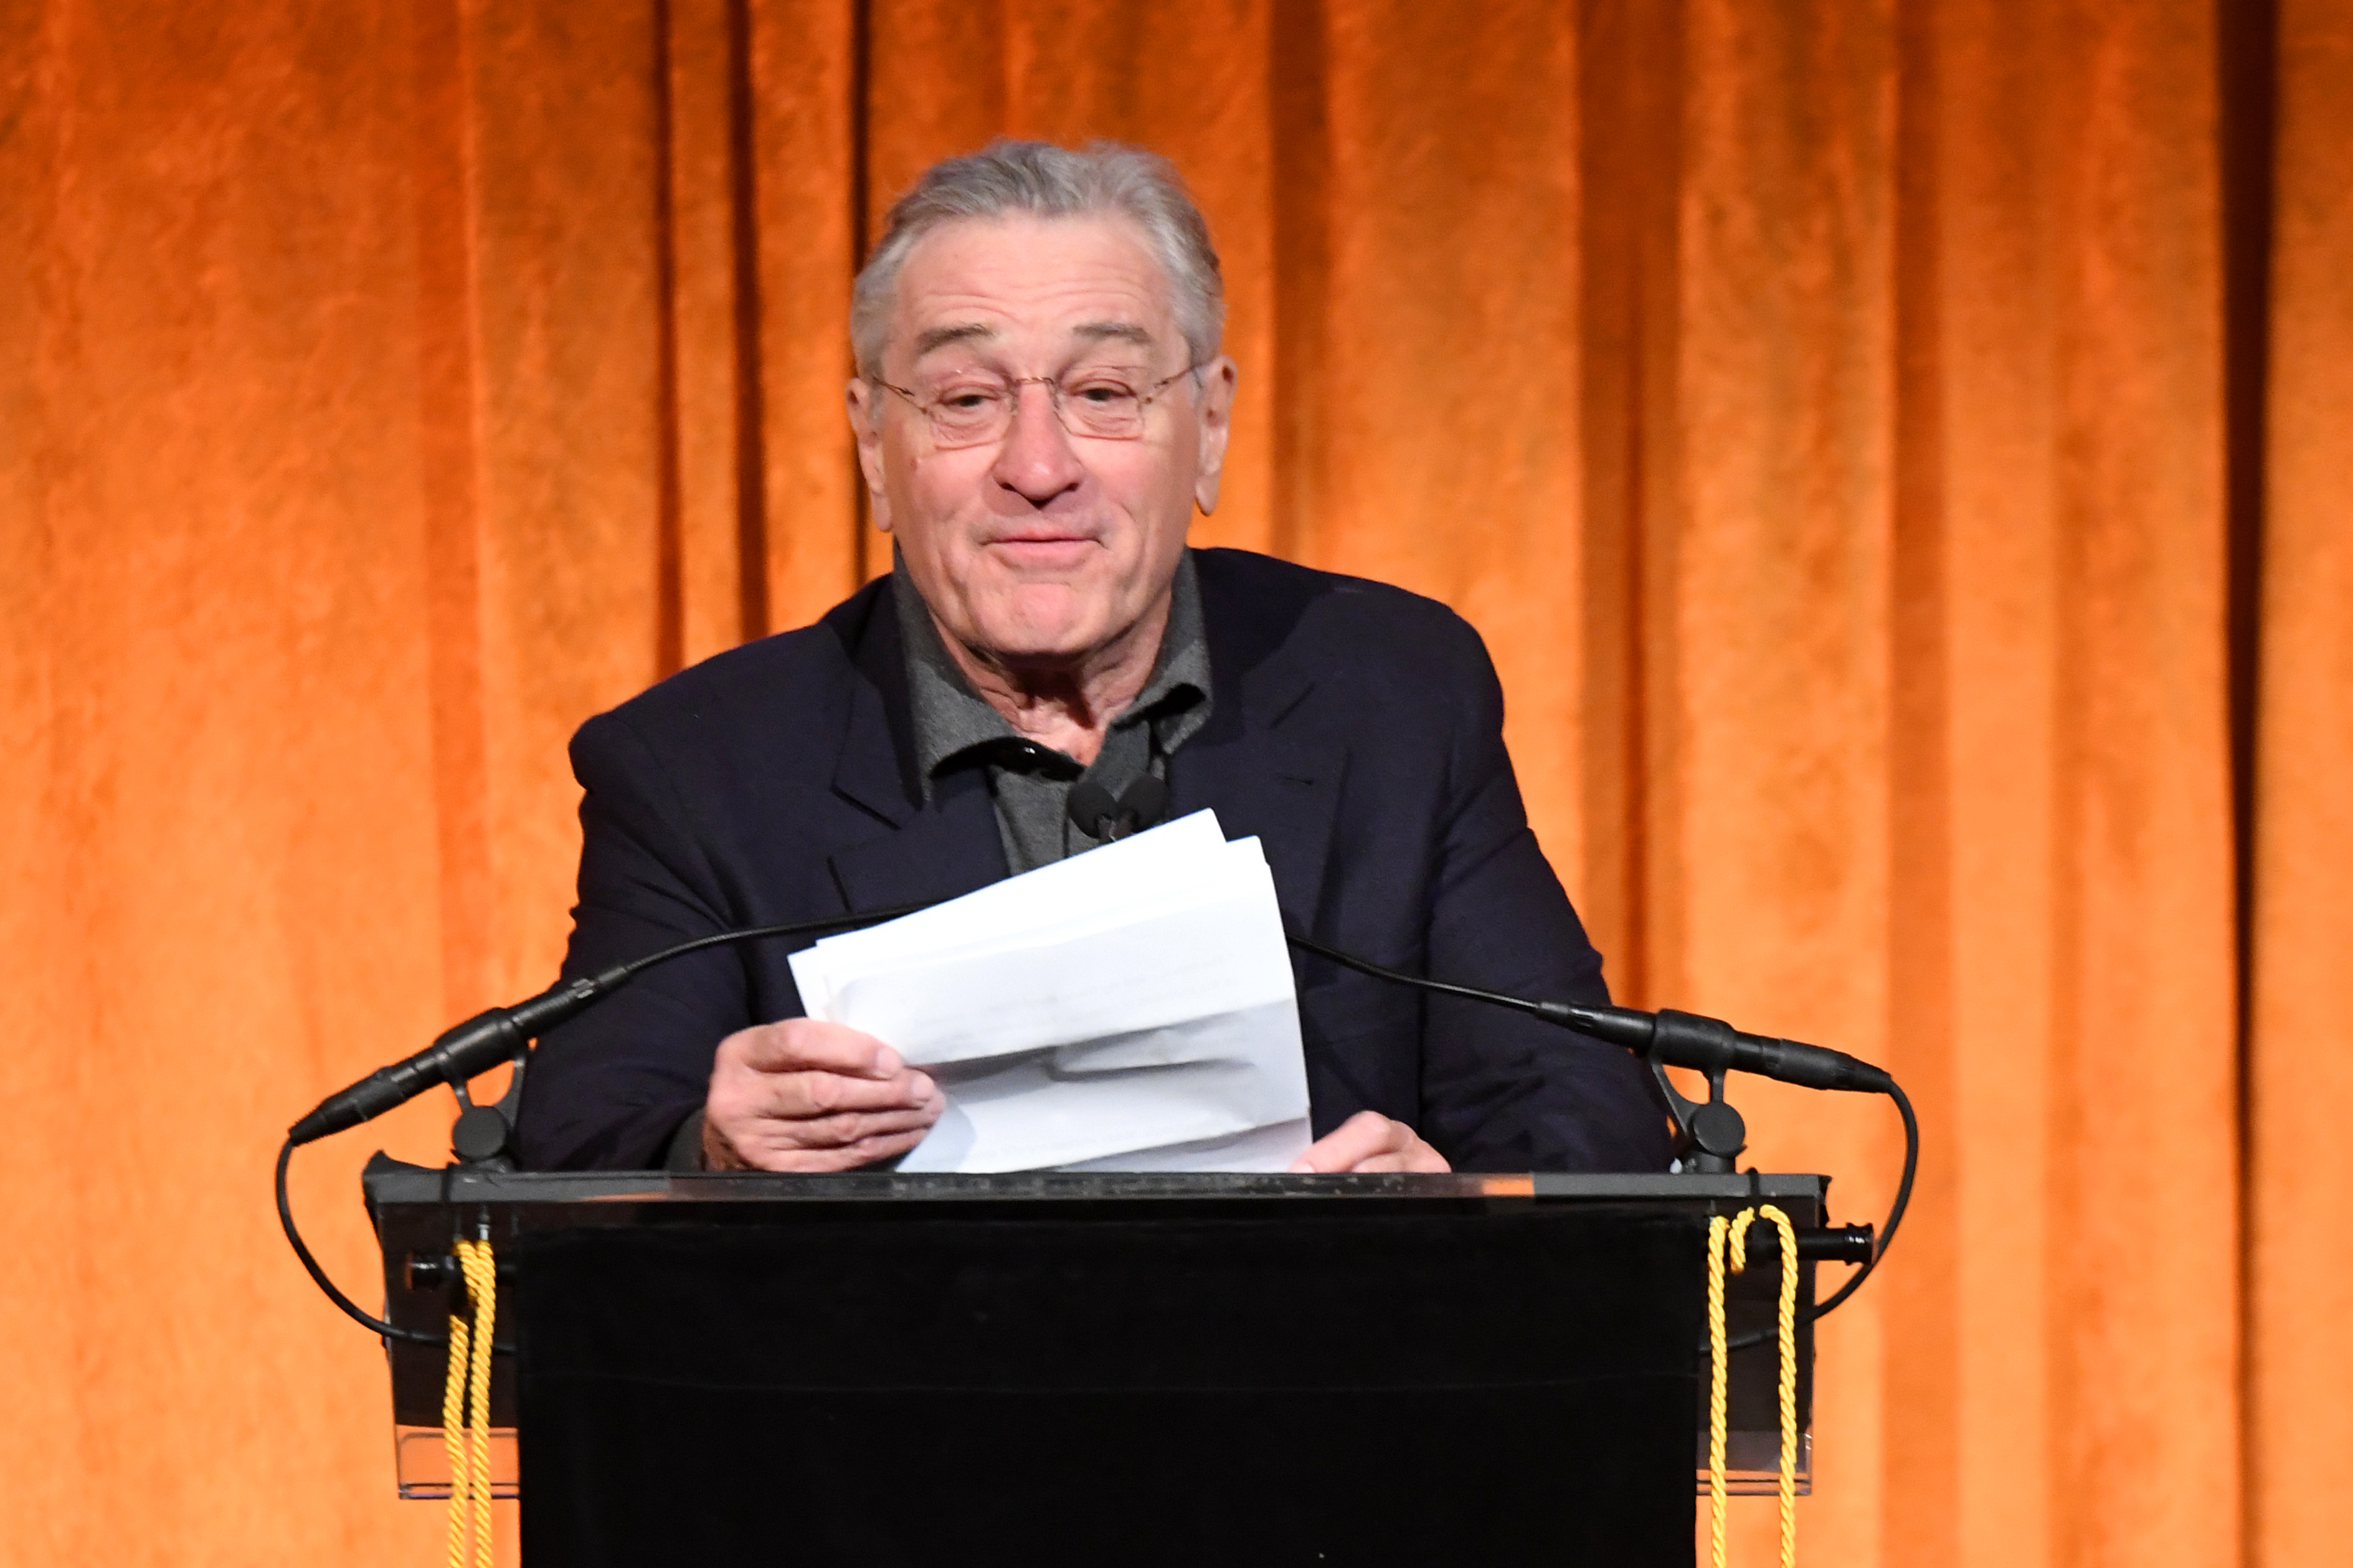 Robert De Niro speaks onstage during the National Board of Review Annual Awards Gala at Cipriani 42nd Street on January 9, 2018 in New York City